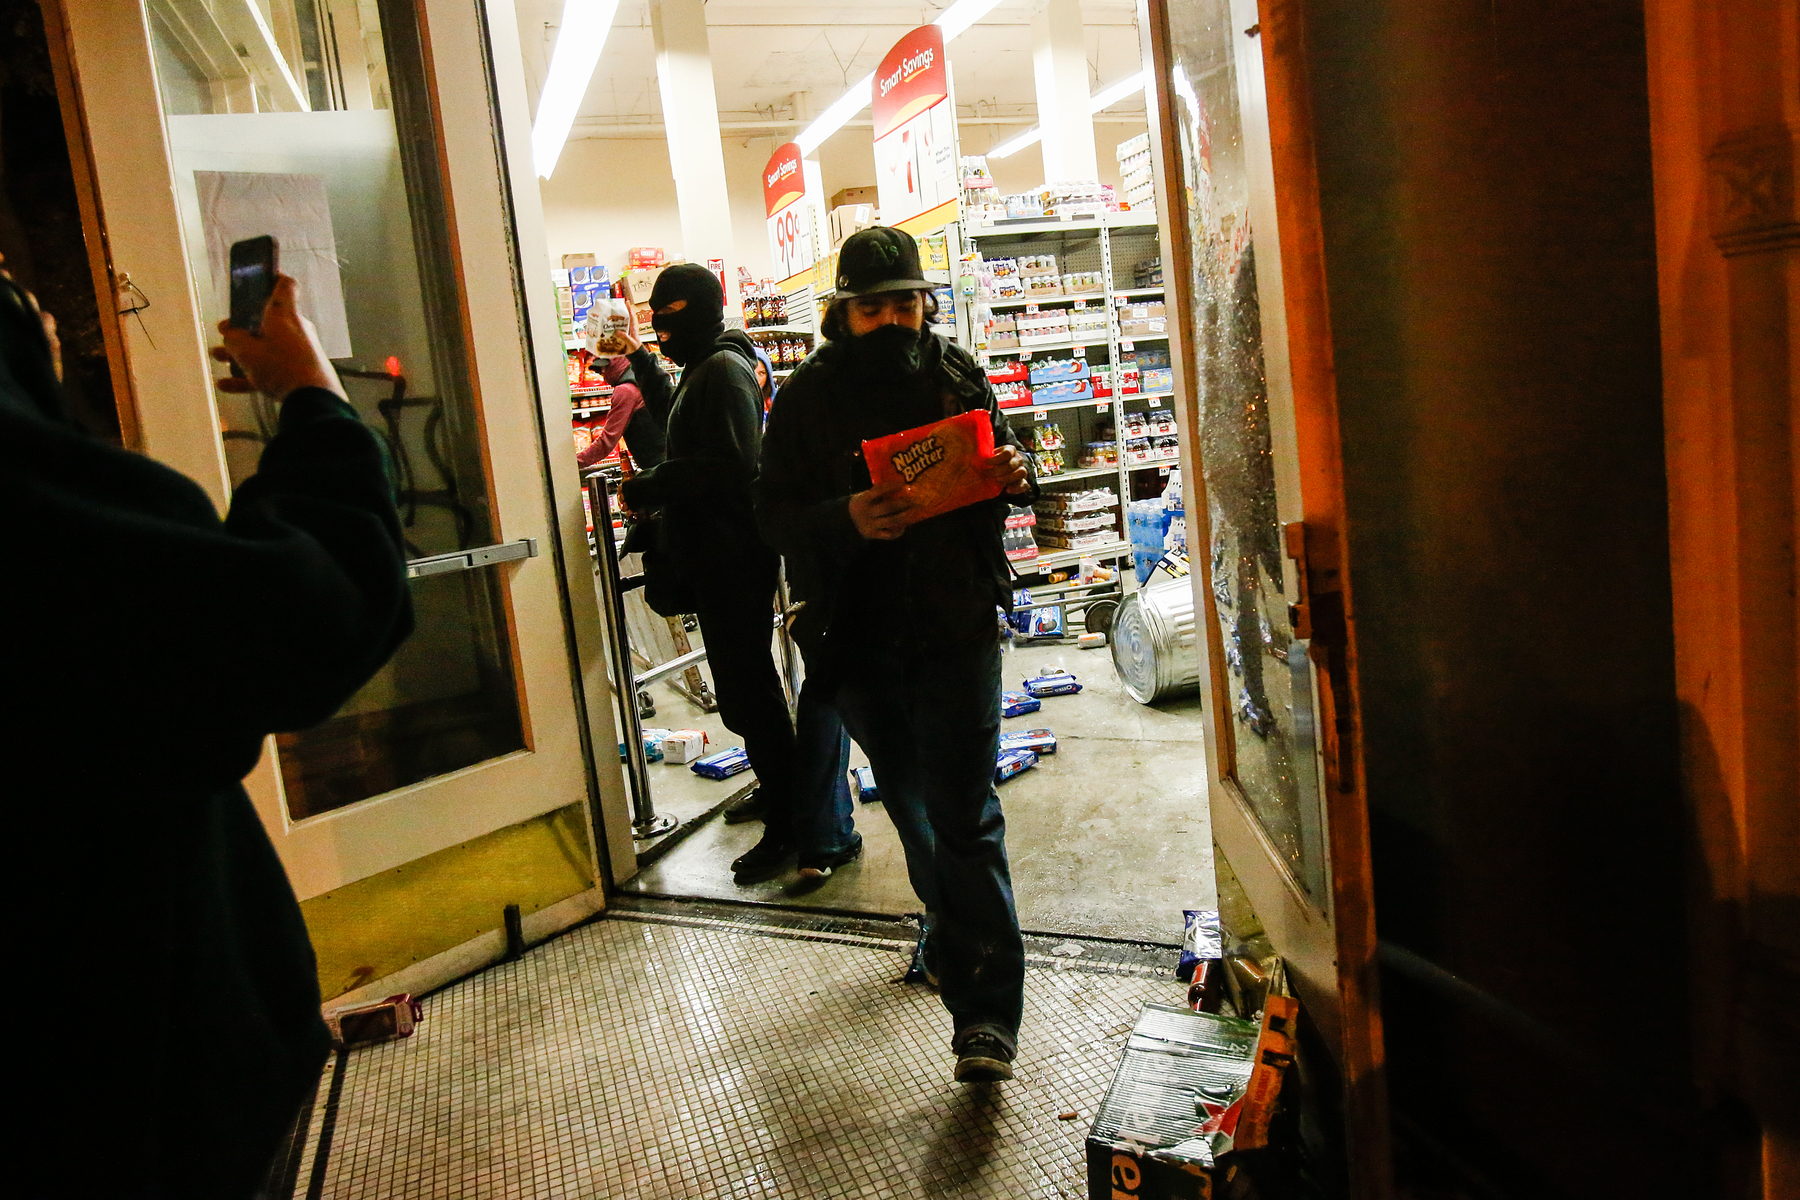 A looter leaves a Smart & Final food and supply store during a demonstration following the grand jury decision in the Ferguson, Missouri shooting of Michael Brown, in Oakland, California November 25, 2014. The grand jury decided on Monday not to indict a white police officer over the fatal August shooting of an unarmed black teenager.